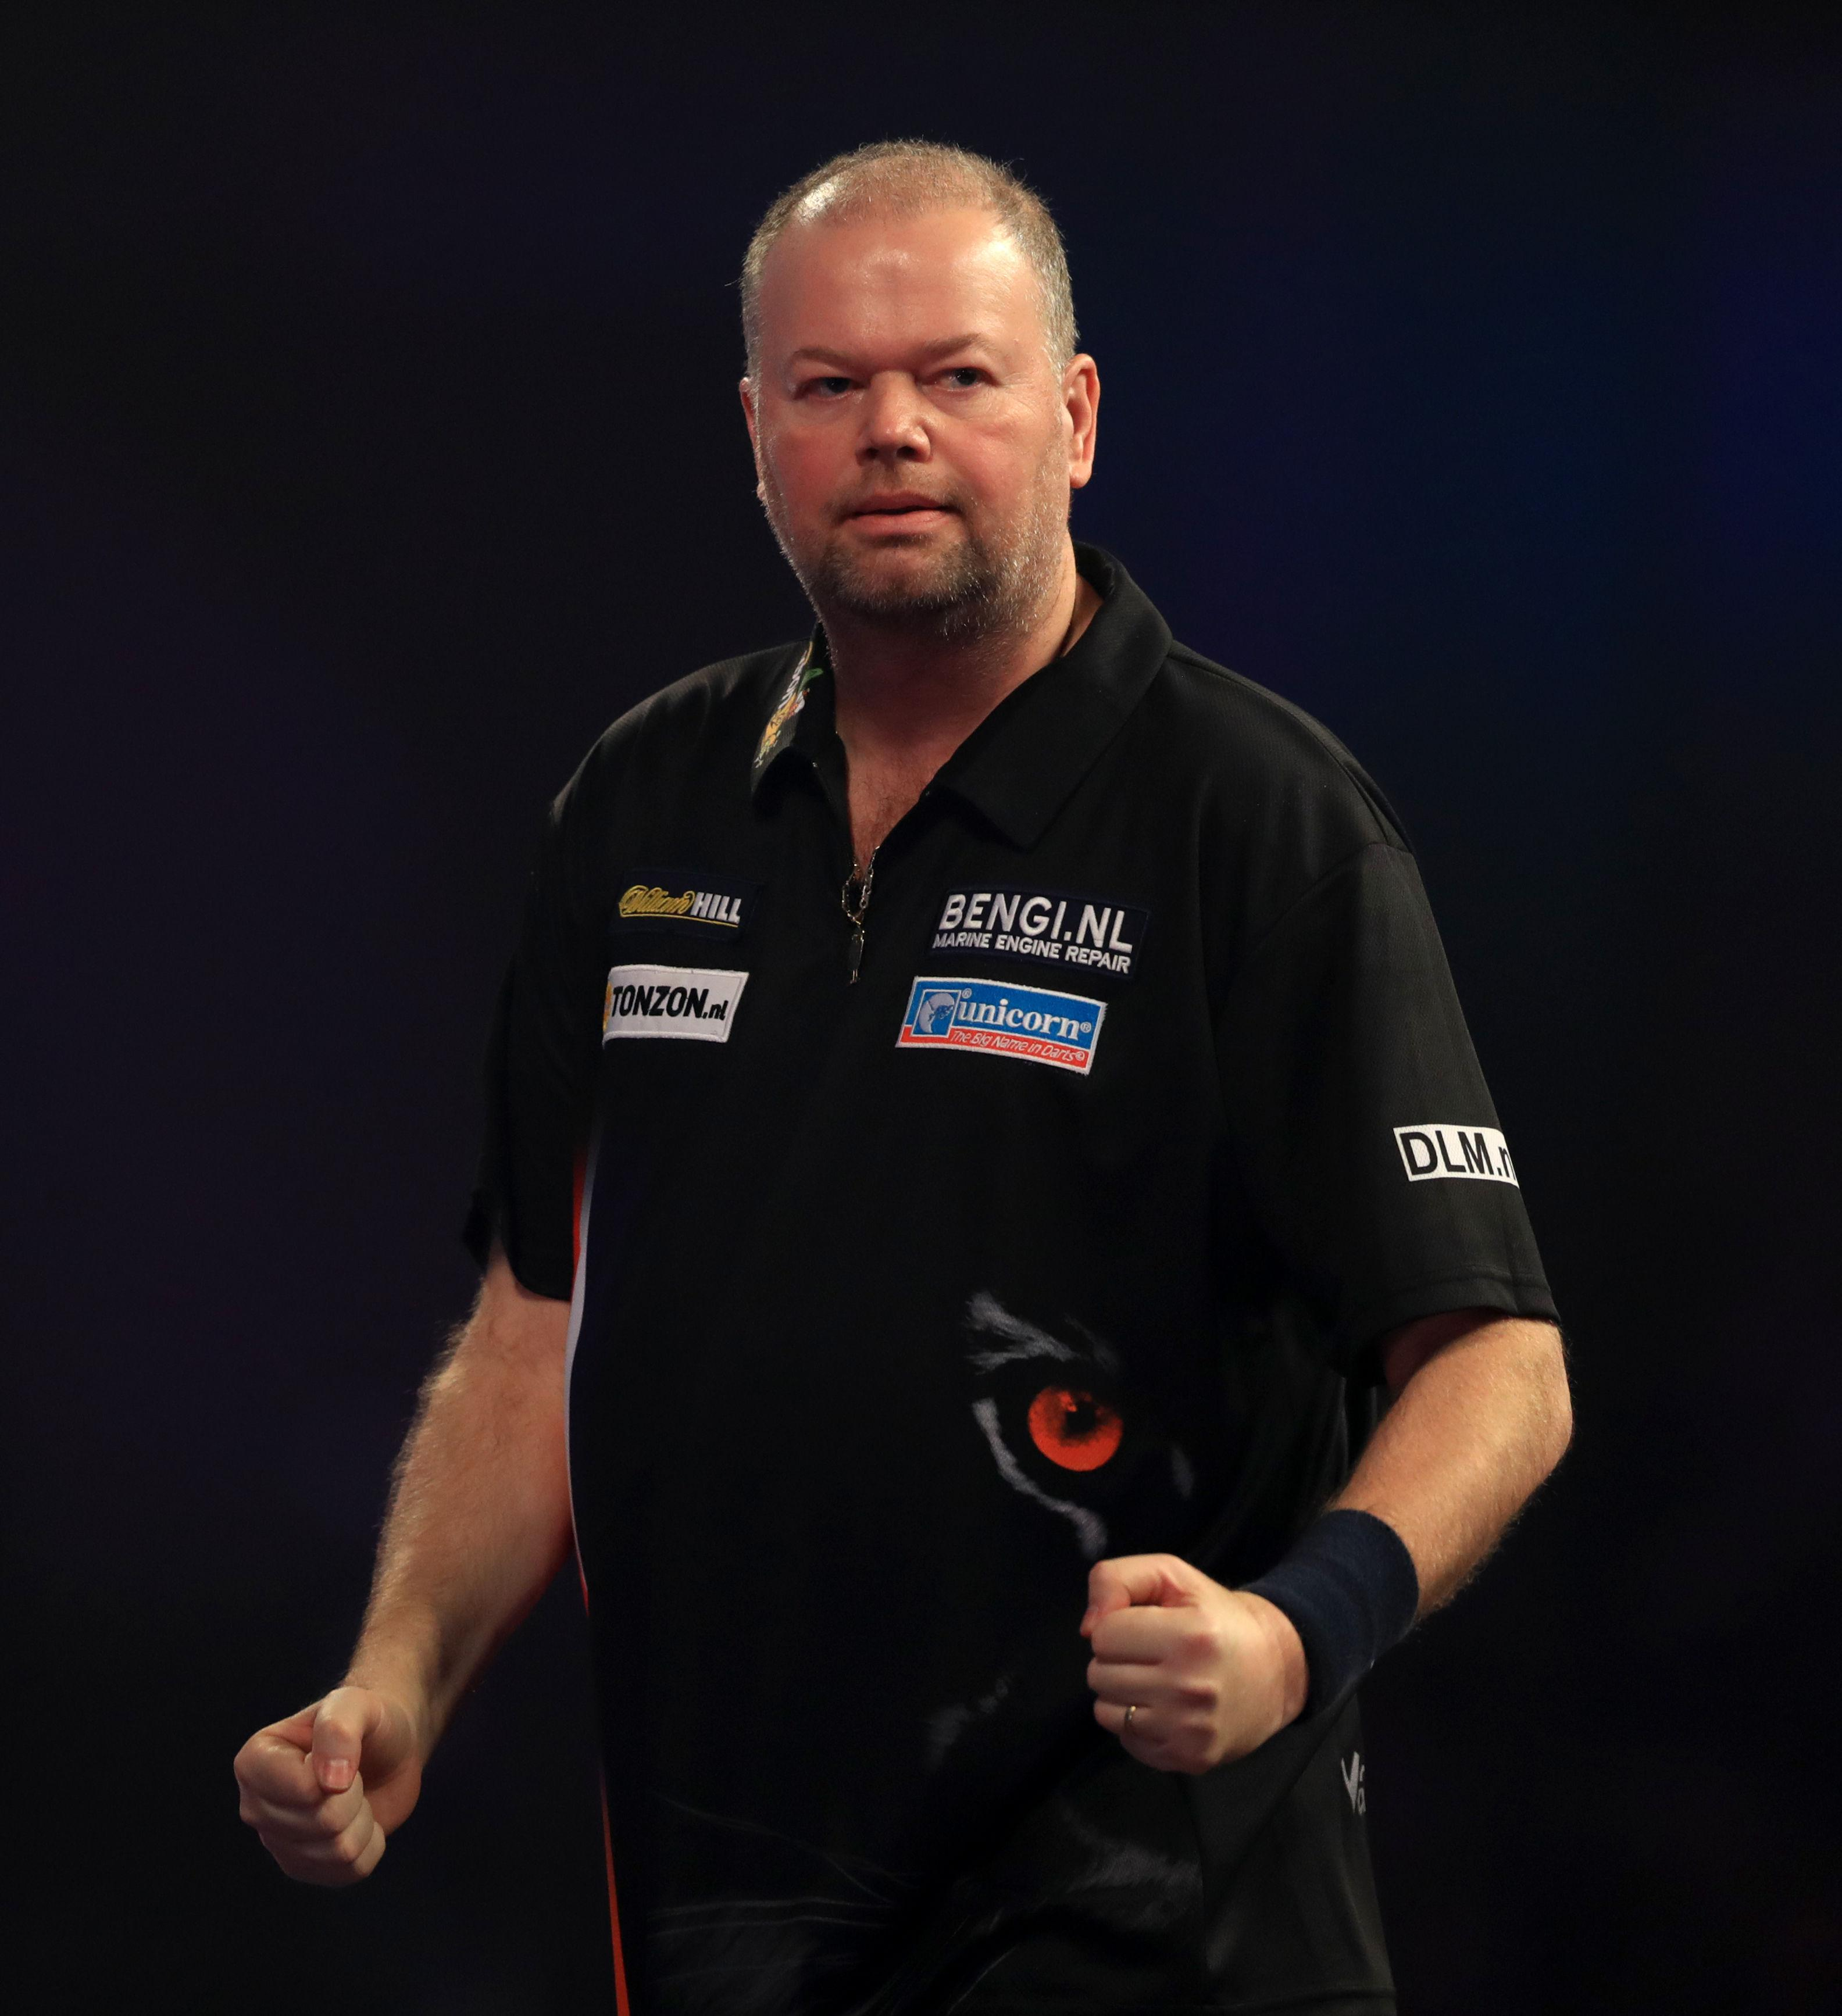 Raymond van Barneveld hailed the decision to put the fans' safety first